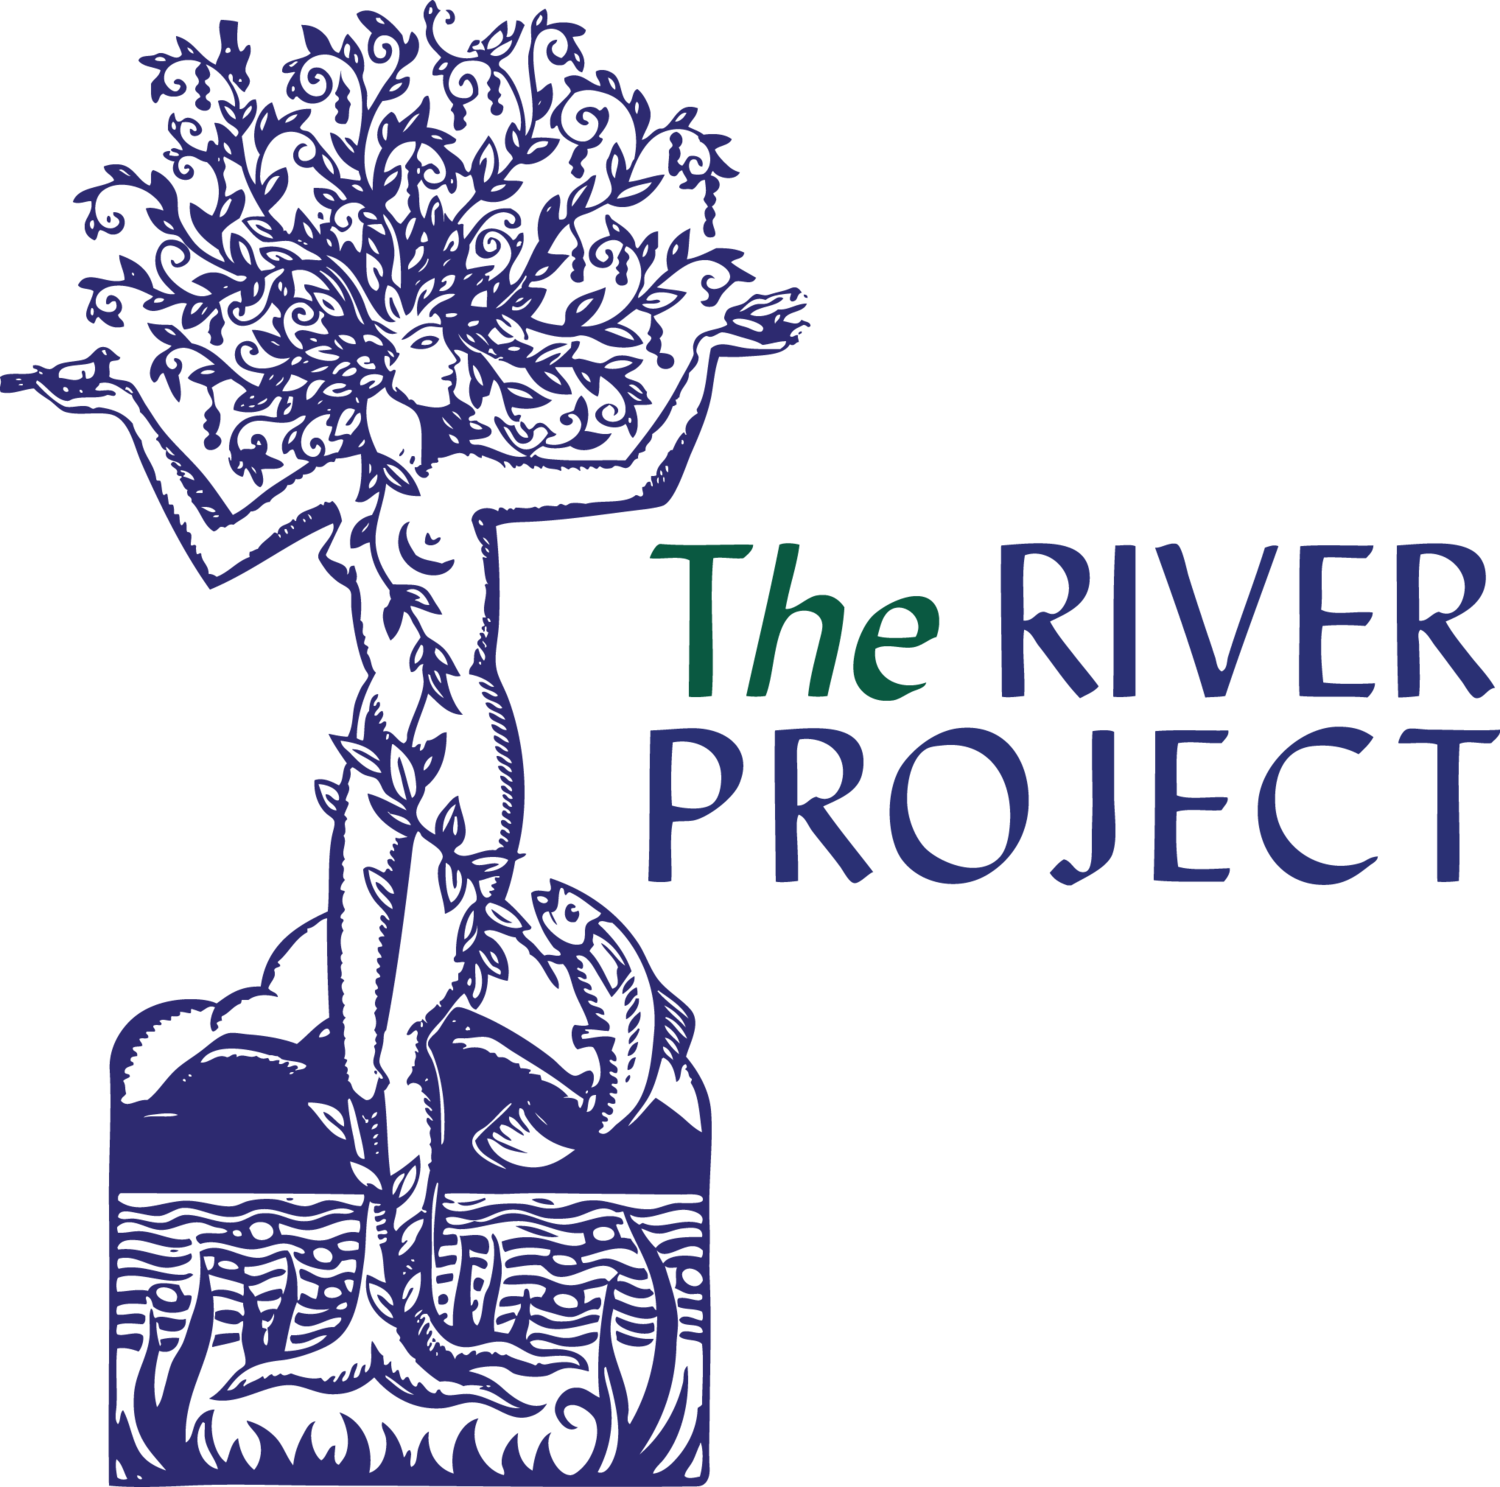 The River Project